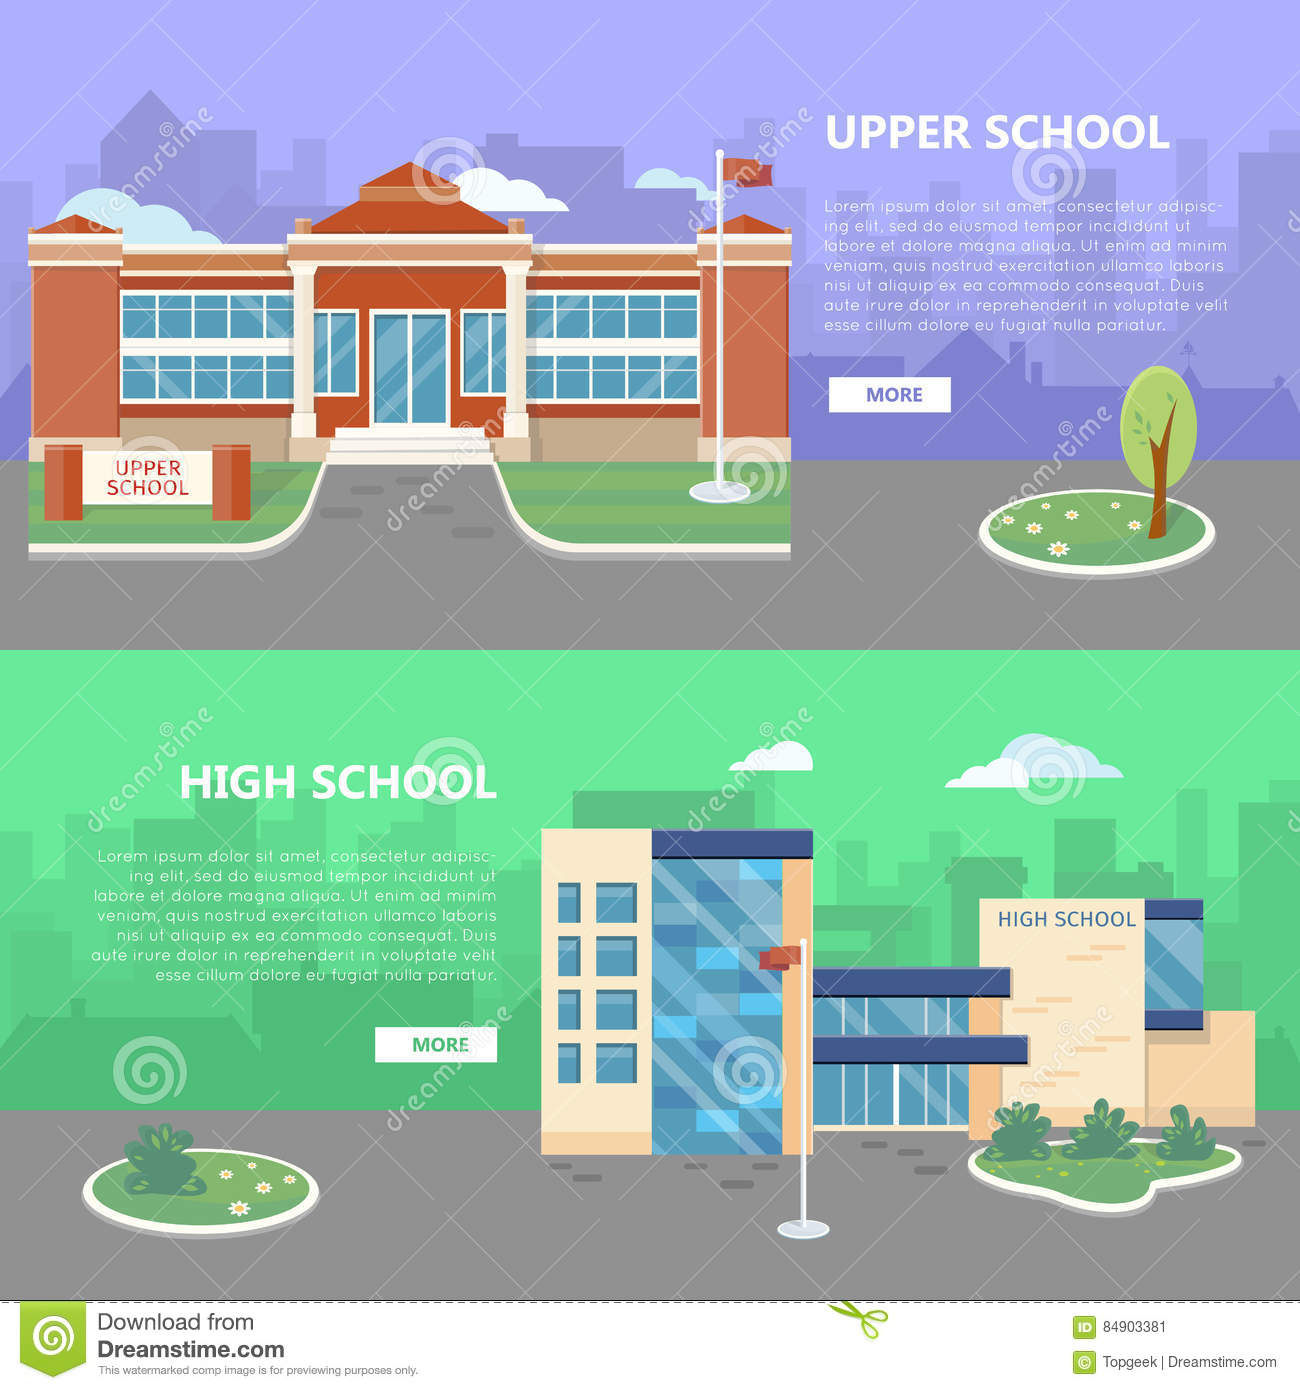 Upper and high school web banners modern and classic school buildings with trees flowerbed flag on yard flat vector illustrations color city silhouettes